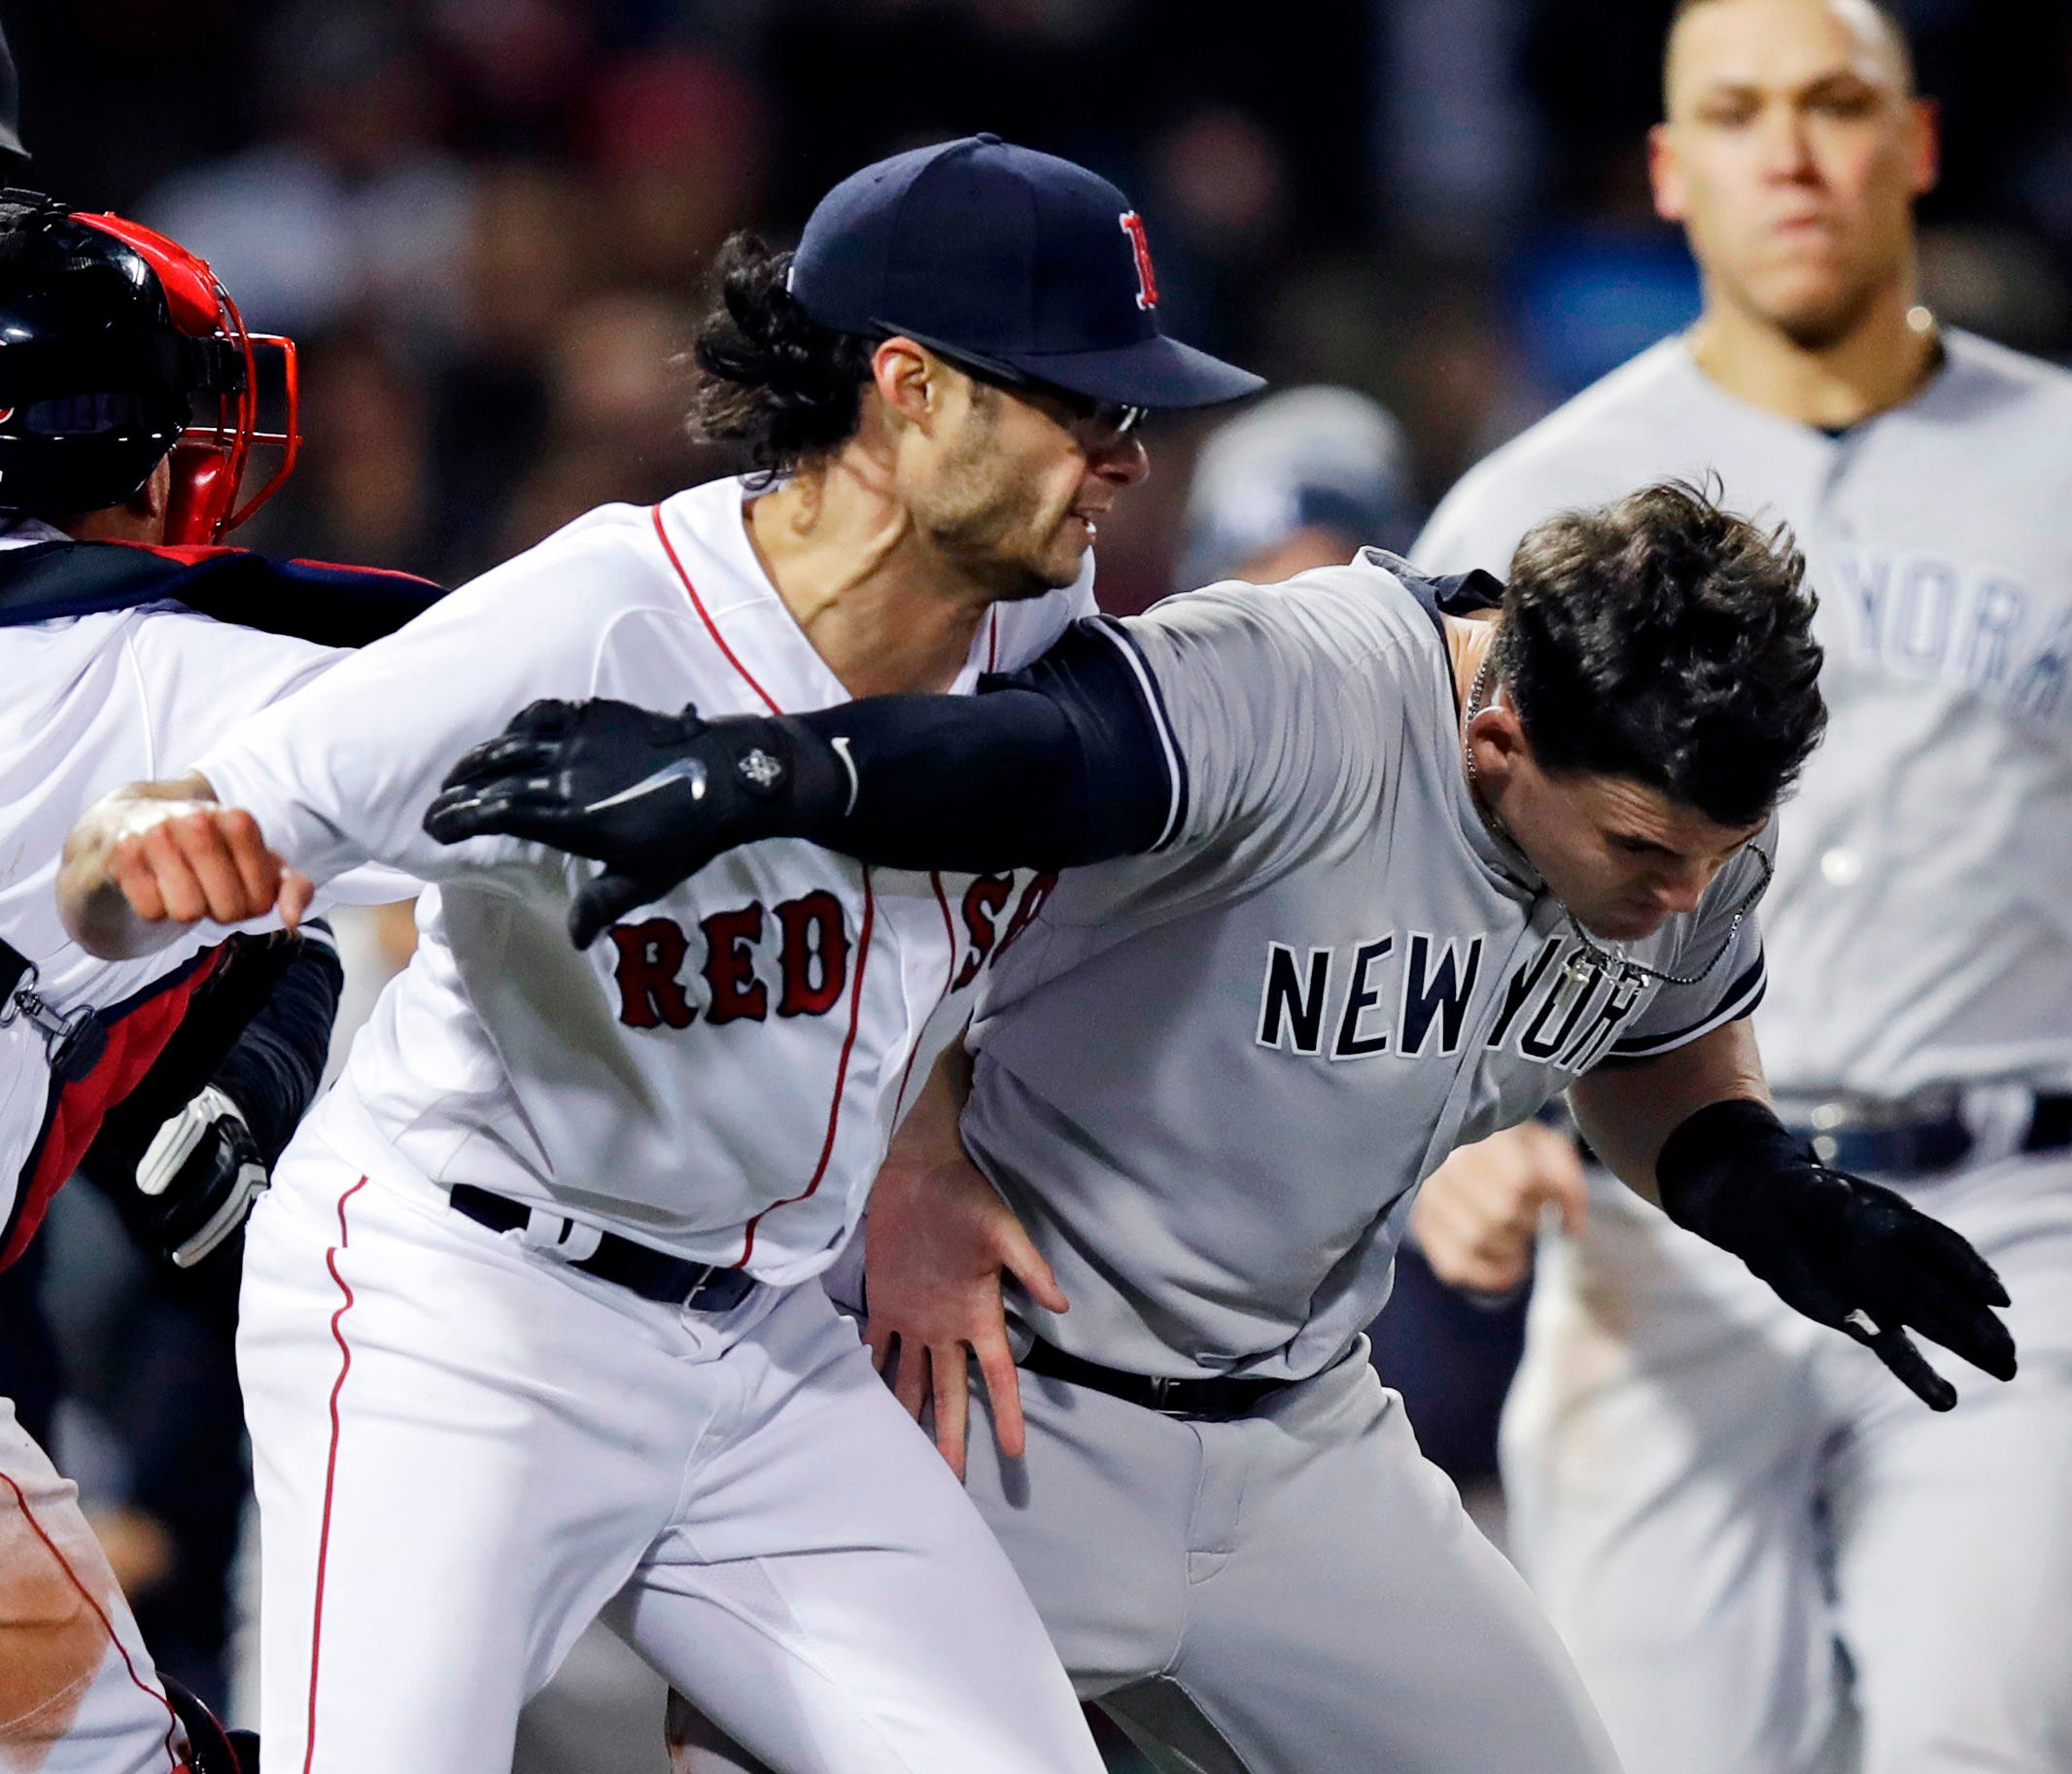 New York Yankees' Tyler Austin, right, scuffles with Boston Red Sox relief pitcher Joe Kelly, after being hit by a pitch during the seventh inning of a baseball game at Fenway Park in Boston, Wednesday, April 11, 2018. (AP Photo/Charles Krupa) ORG XM